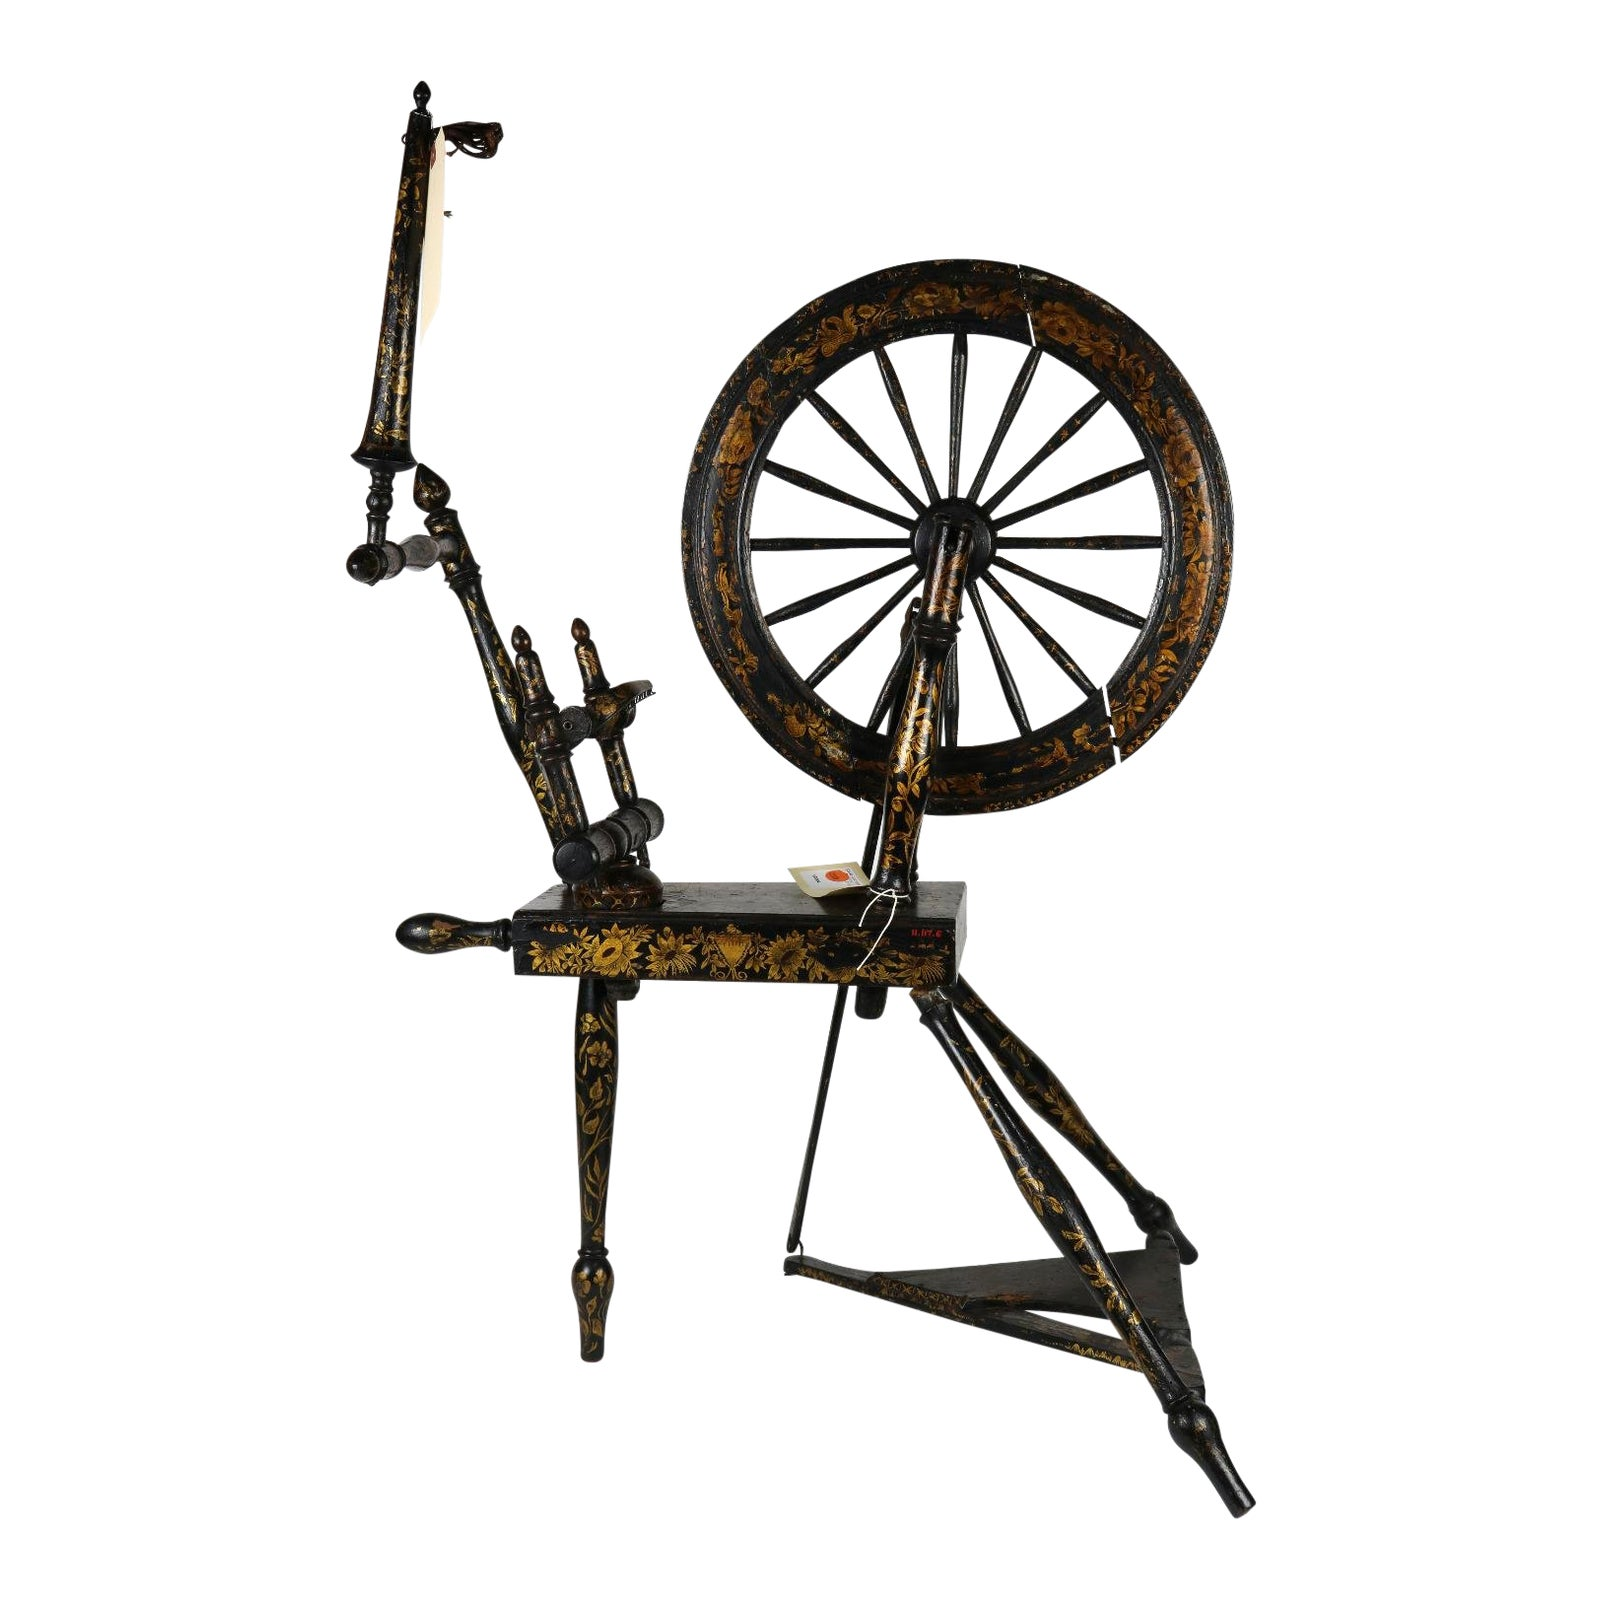 200 Year Old Antique English Spinning Wheel Once in the Collection of the  Metropolitan Museum of Art